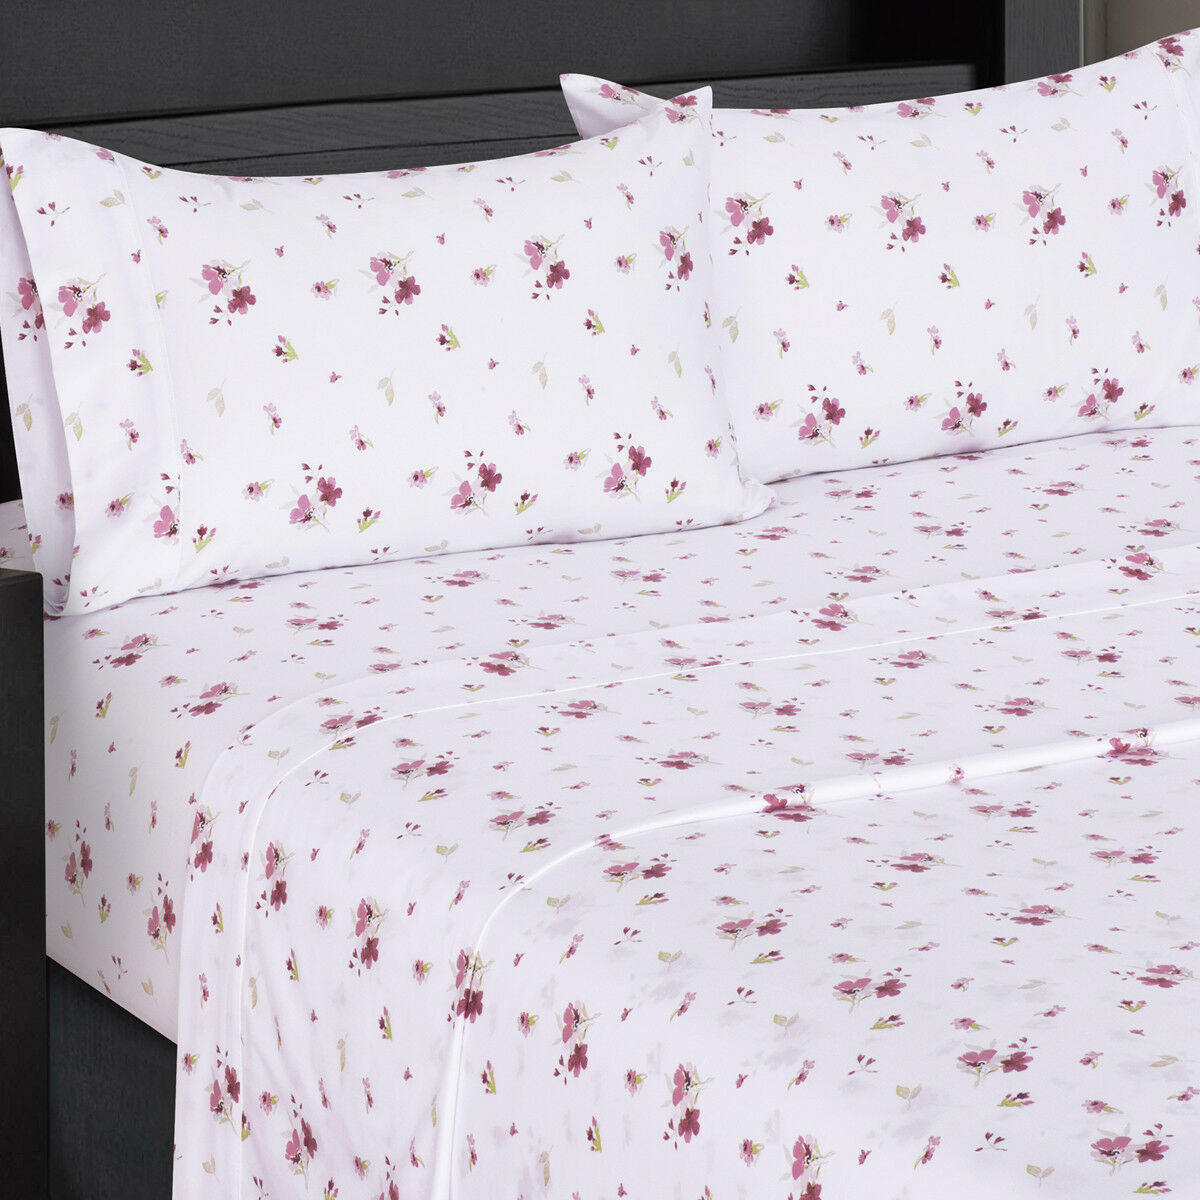 Printed Sheet Sets Zahra 300 Thread Count White Printed Bed Sheets Cotton Floral